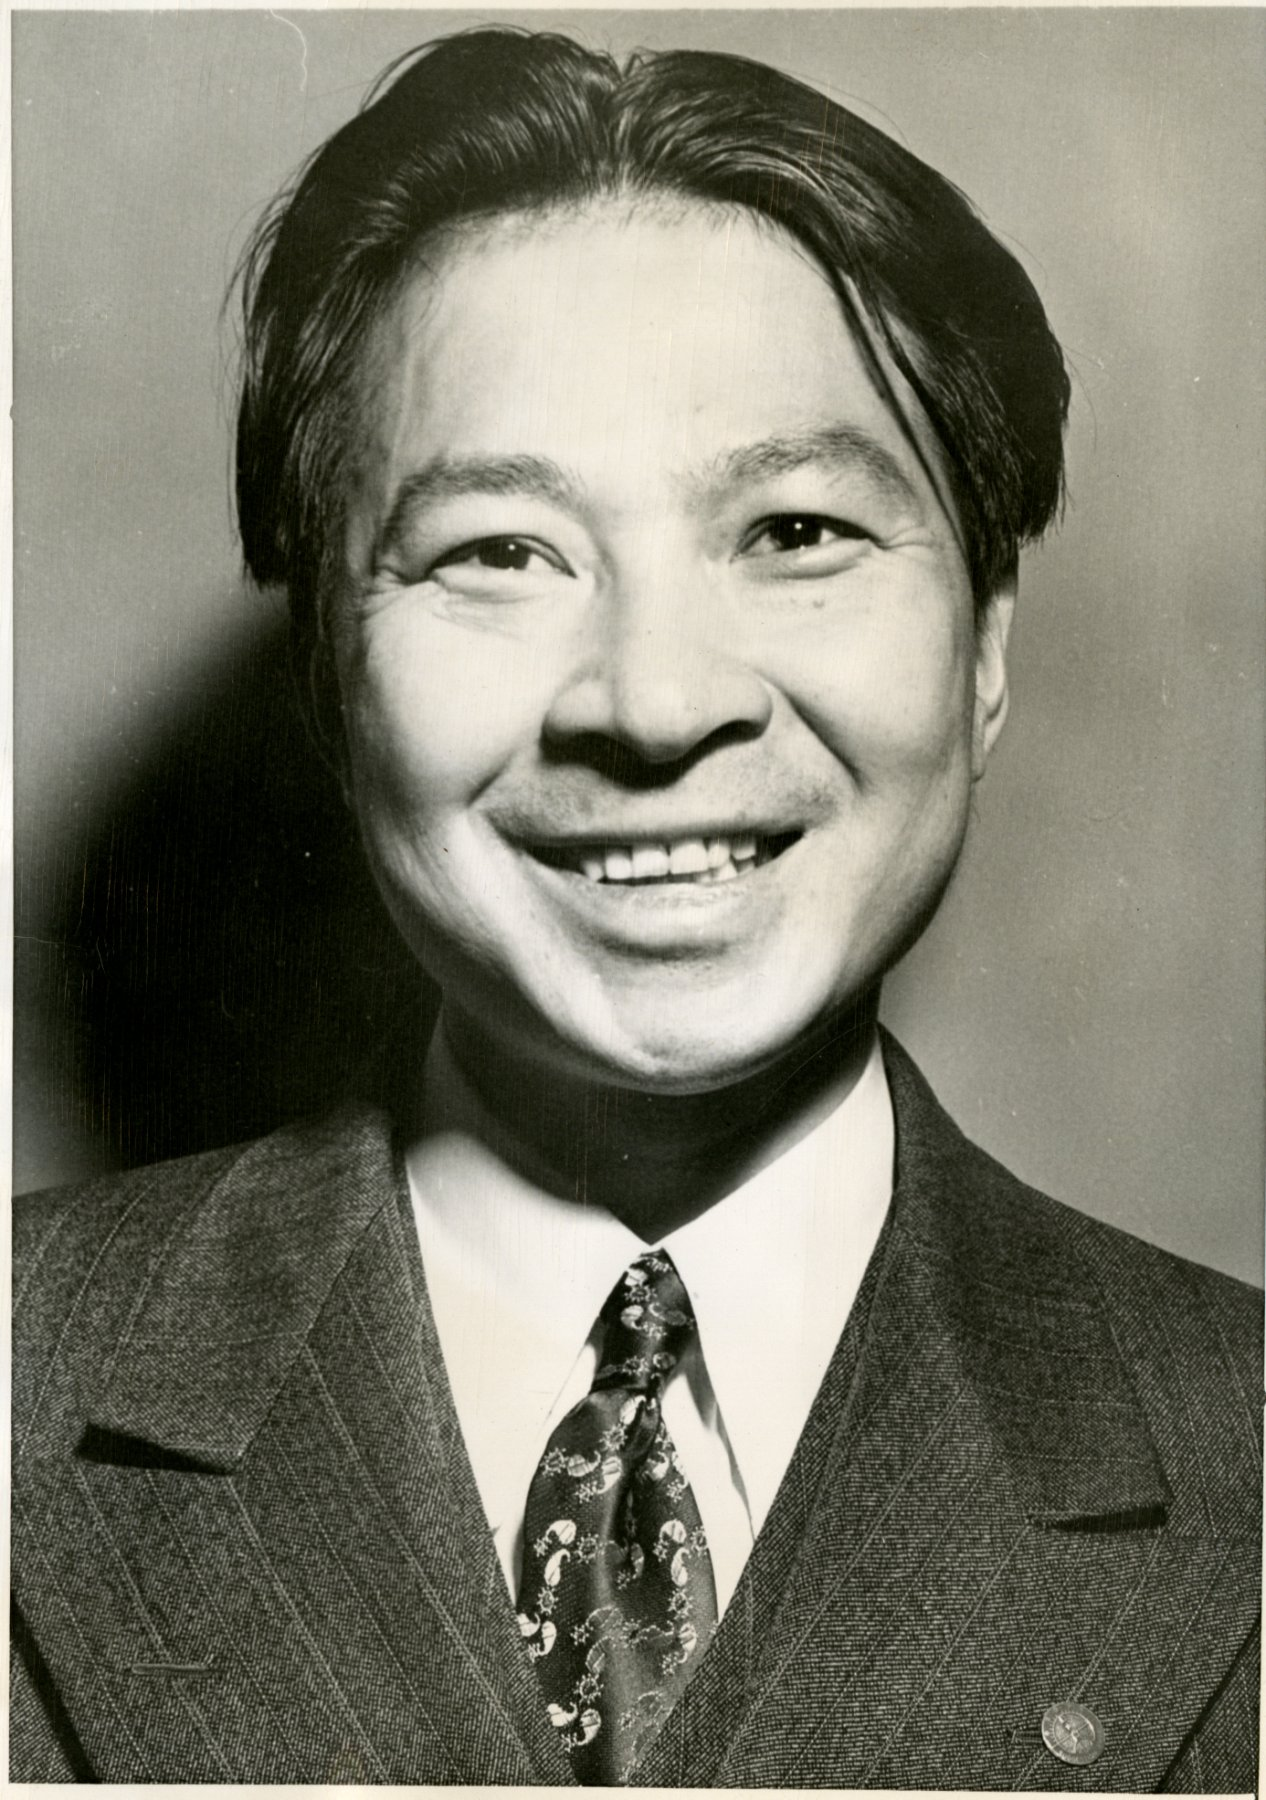 05 August 2019 Posted. Yun Gee Headshot; Courtesy of Alex Jay, Museum of Chinese in America (MOCA) Collection. 朱沅芷证件照;Alex Jay捐赠,美国华人博物馆(MOCA)馆藏